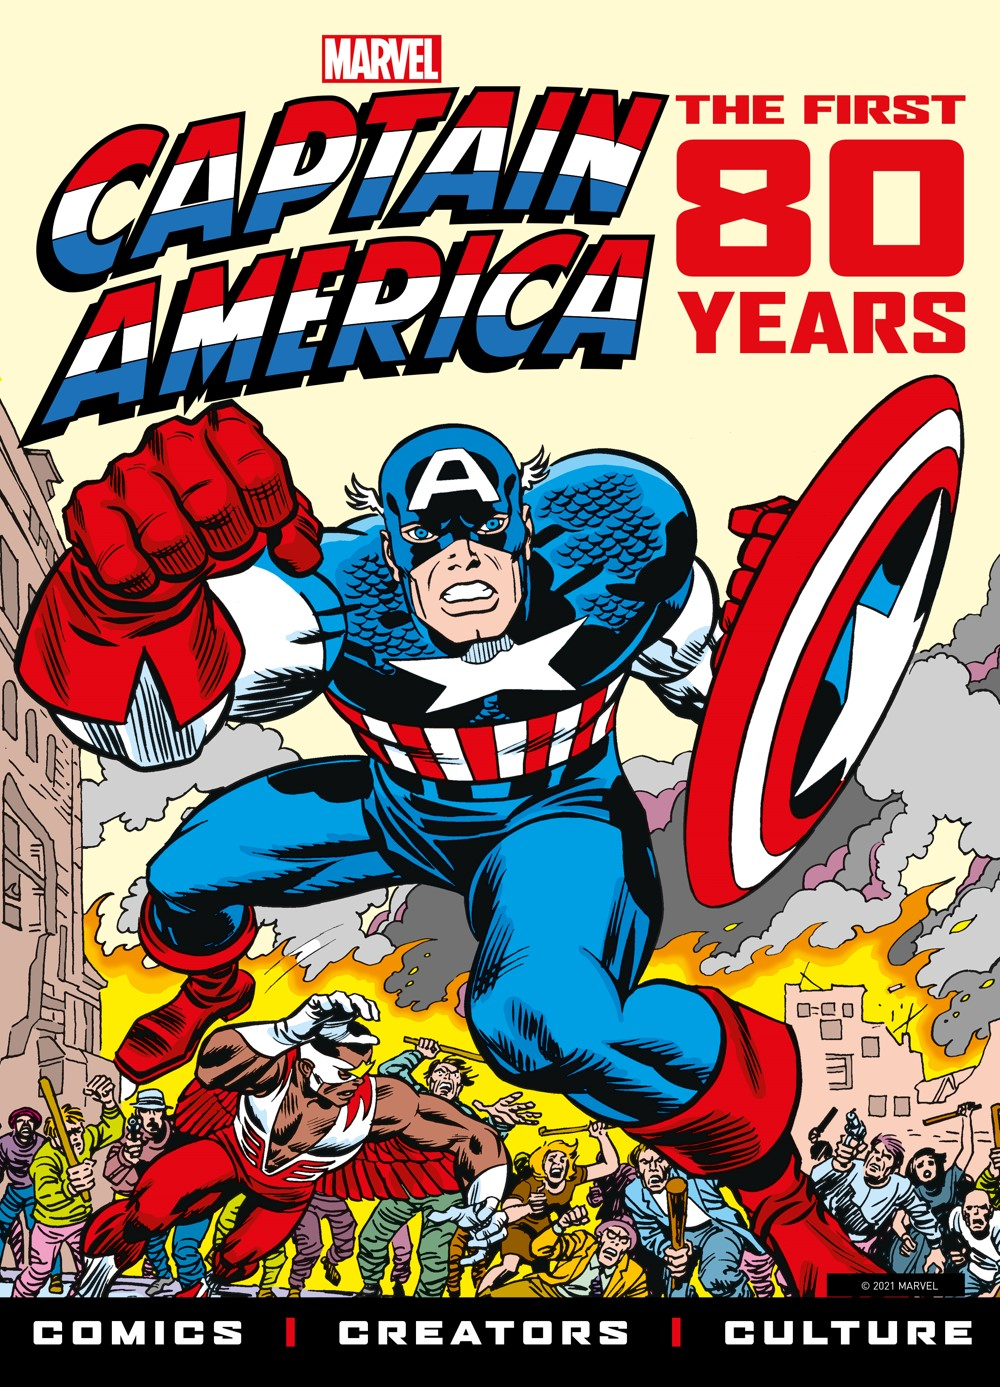 exclusive1 ComicList Previews: MARVEL COMICS CAPTAIN AMERICA THE FIRST 80 YEARS